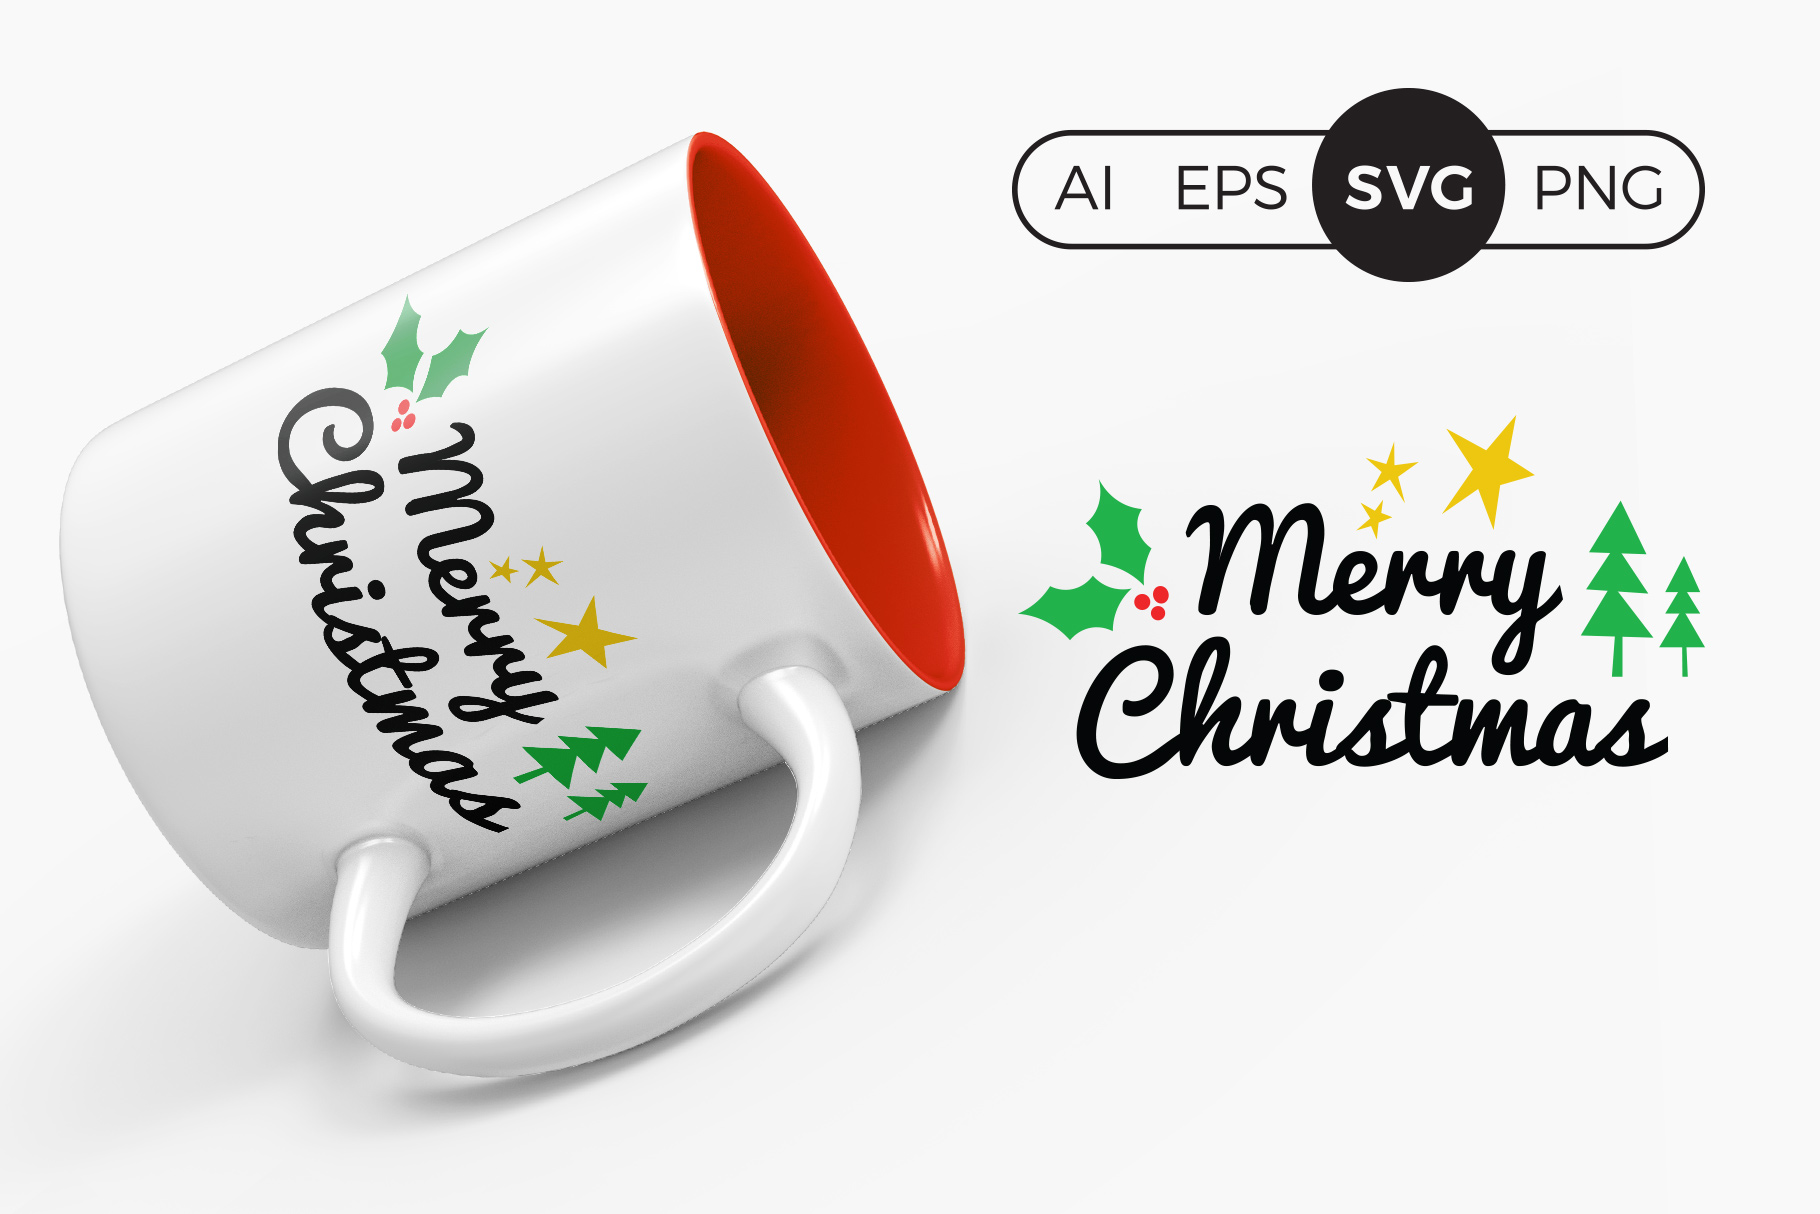 Merry Christmas Svg Clipart Graphic By Dtcreativelab Creative Fabrica